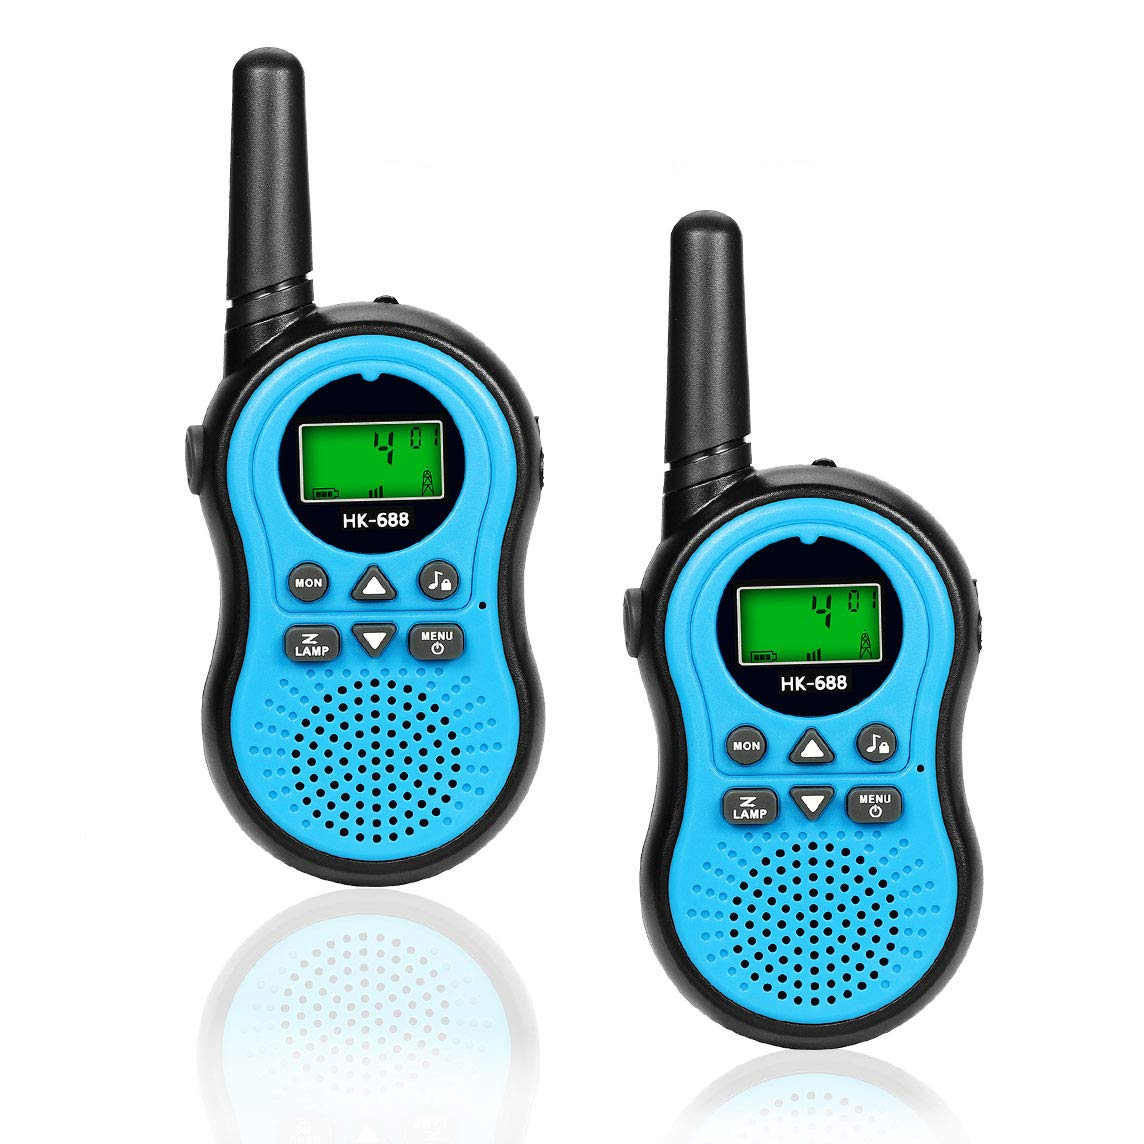 Kids Toys for 3-15 Year Old Boy,Fun Gifts for Teen Girls Boys,XIYITOY Walkie Talkies for Children Teen Boy Gifts Birthday Presents,Boys Gift Age 5,HK-688 1Pair(Blue)